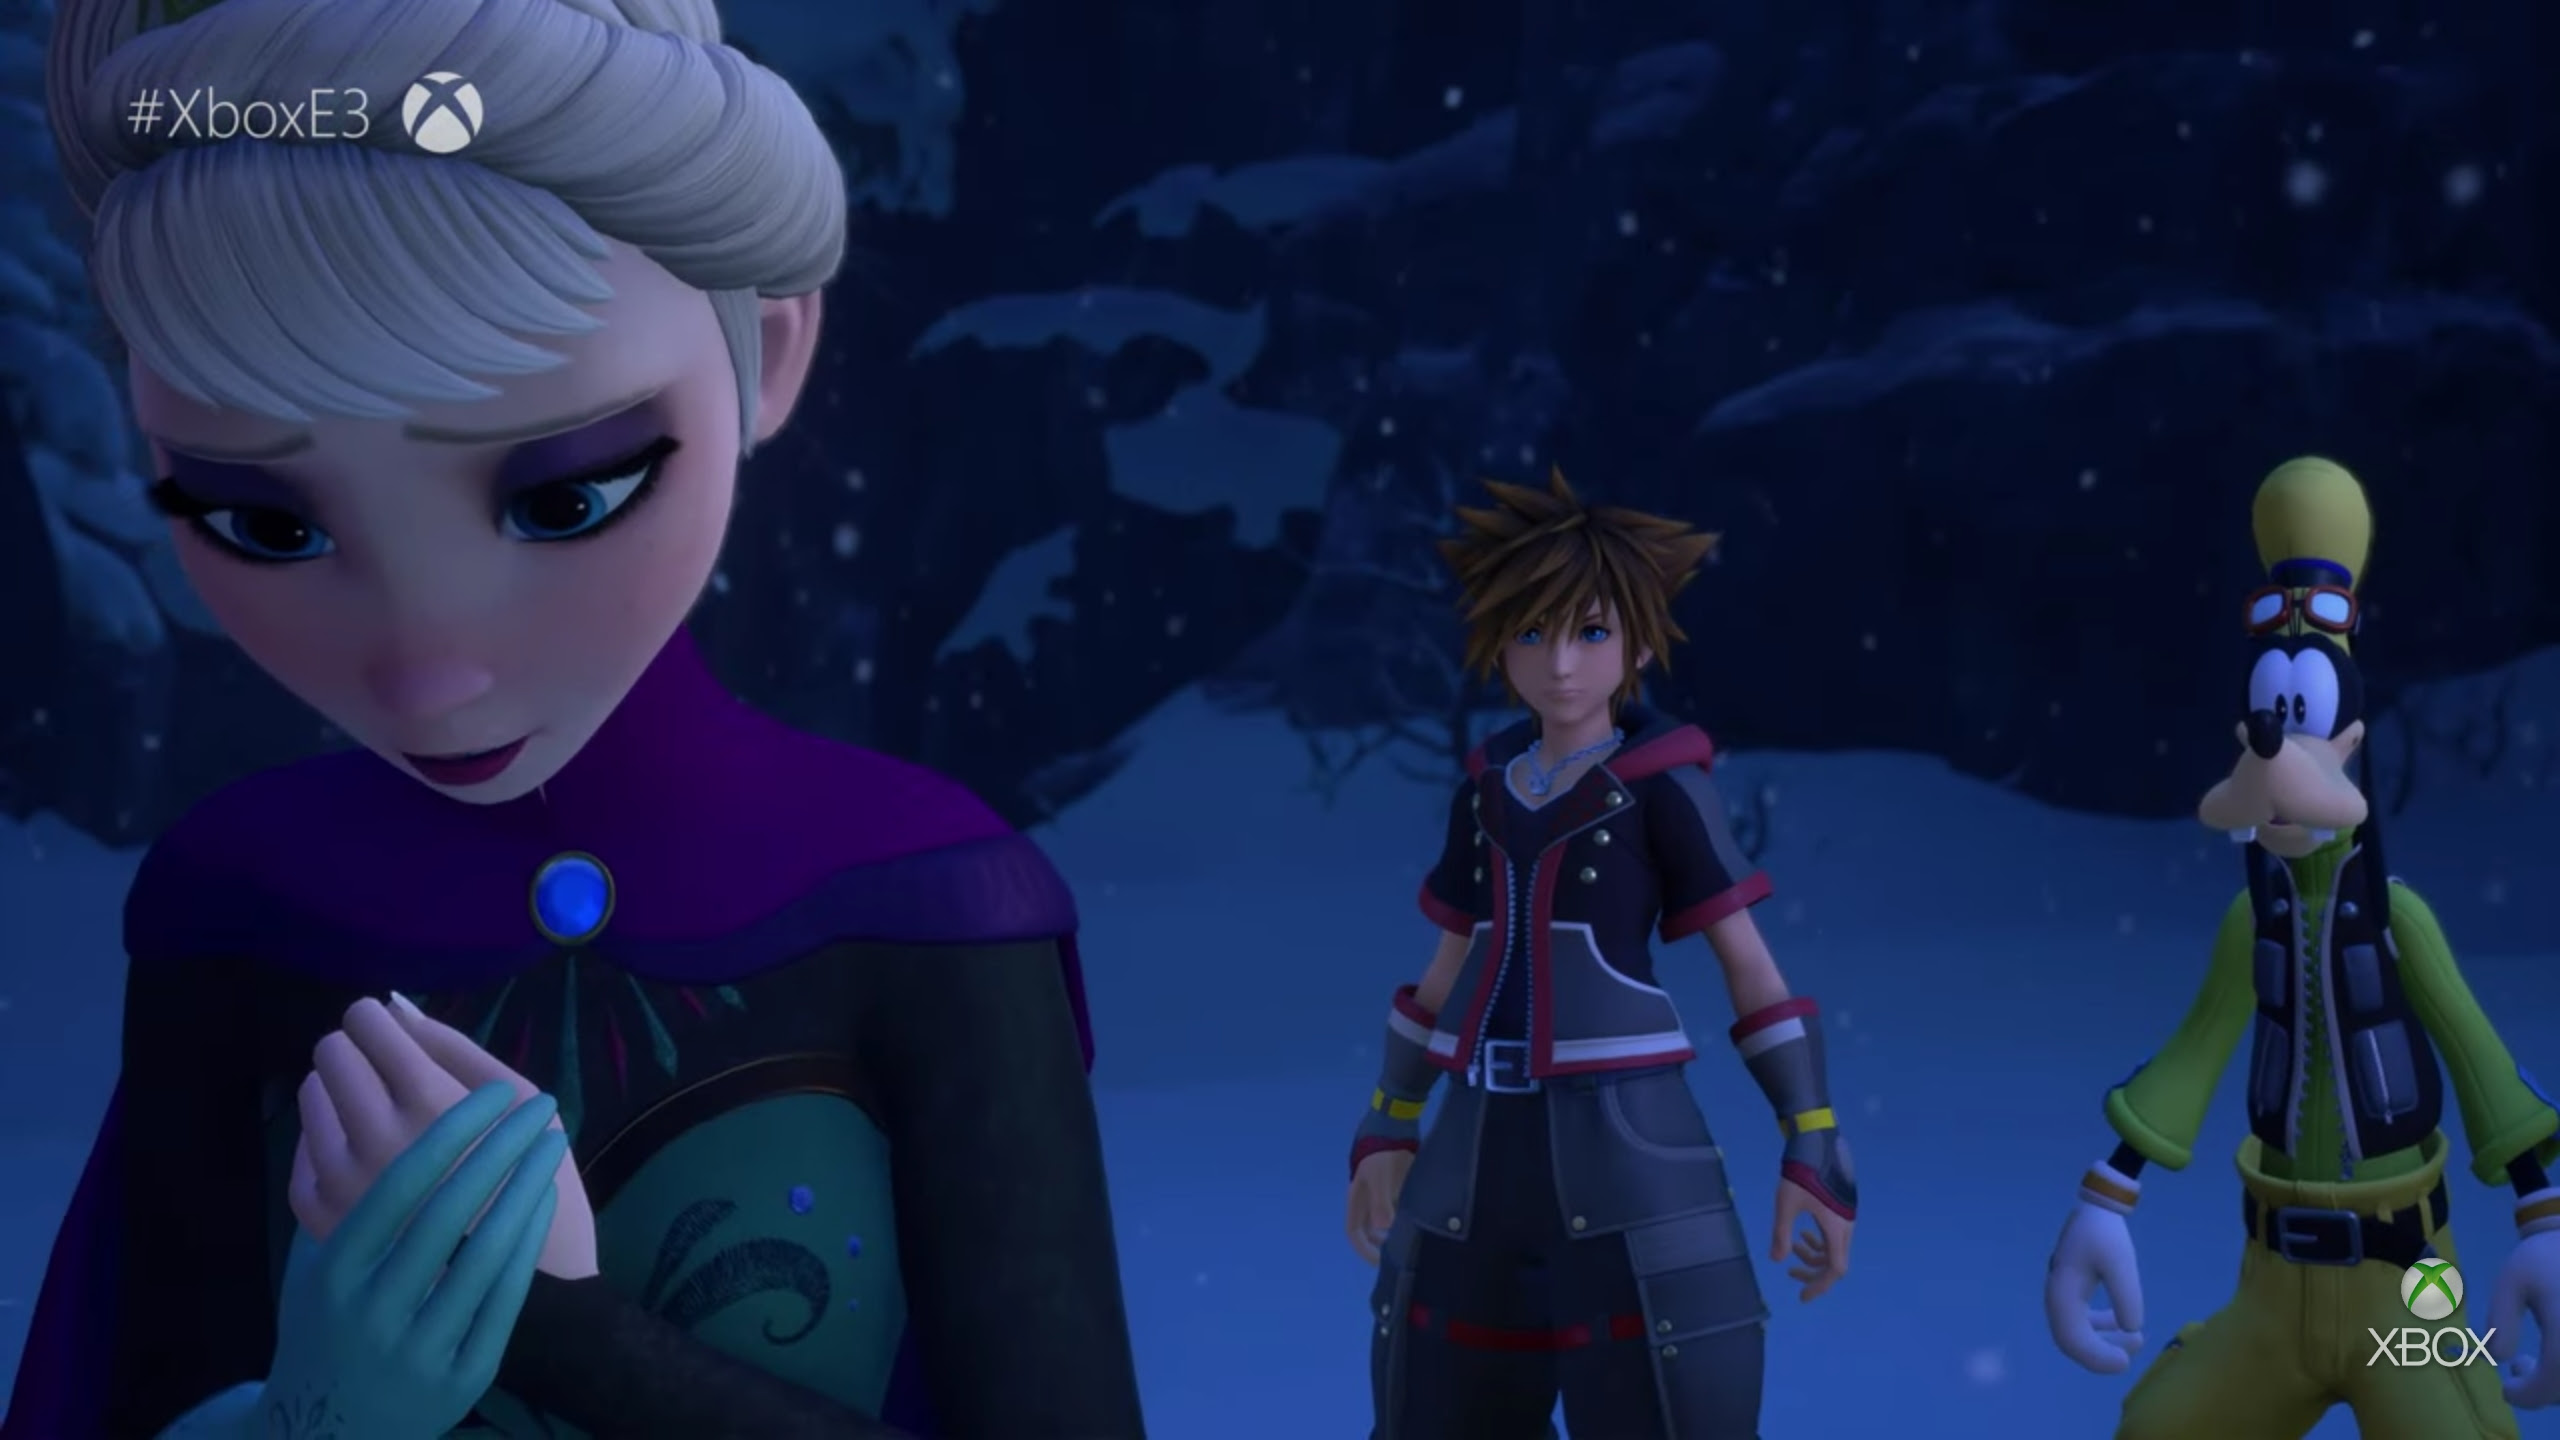 Here's a new Kingdom Hearts III trailer with a focus on Frozen screenshot